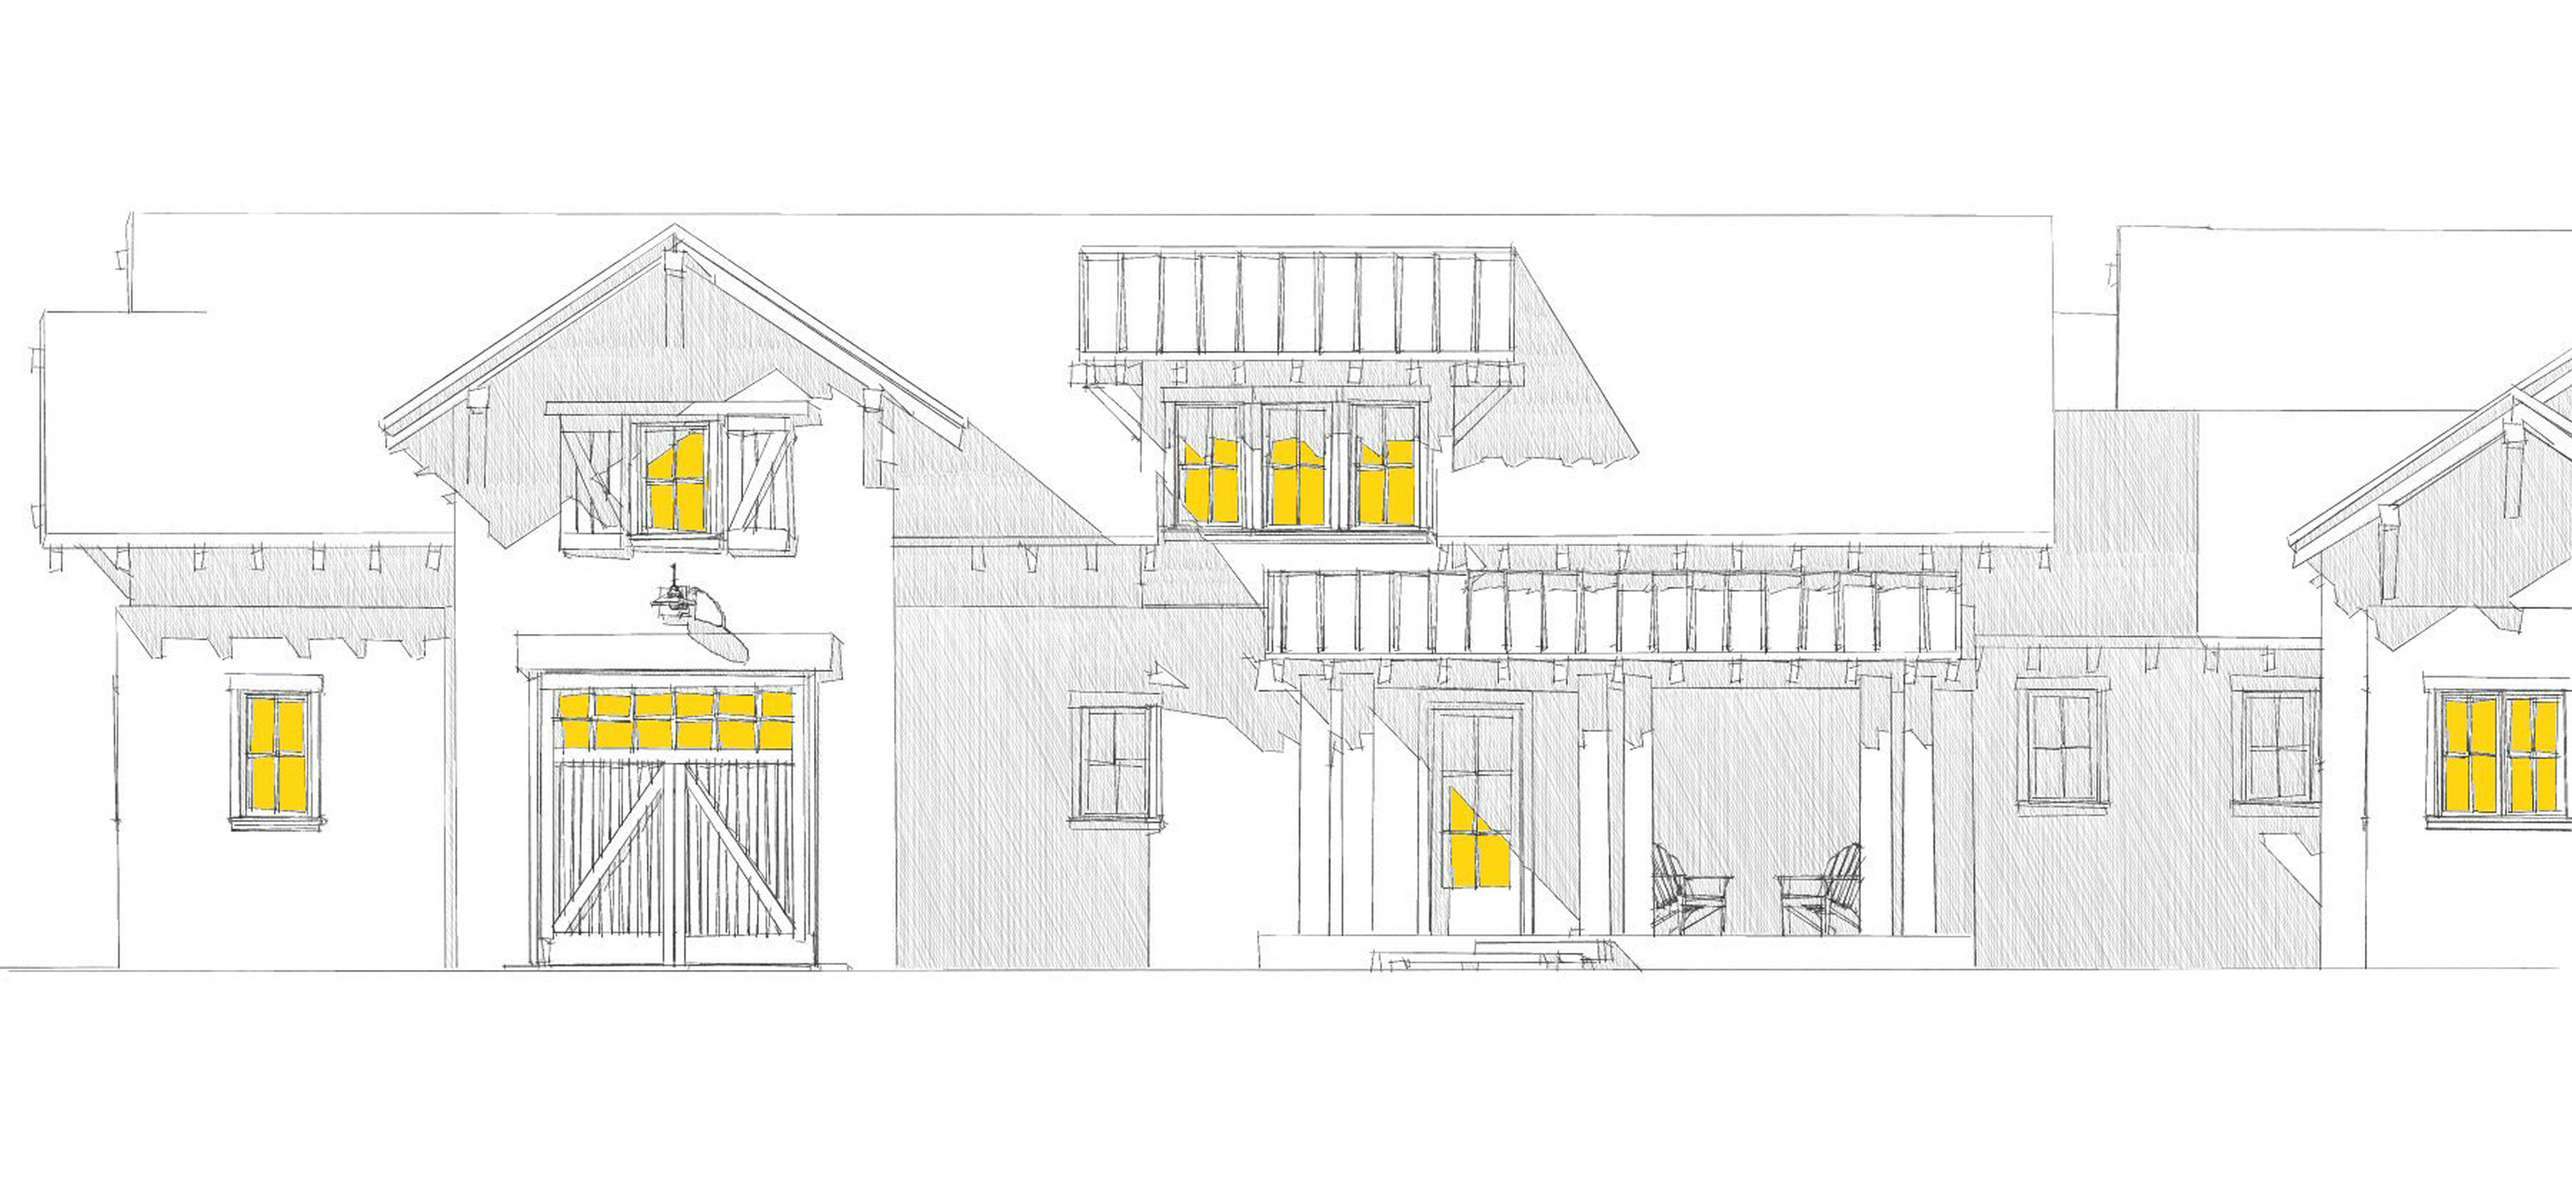 plan-west-design-firm-_-projects-in-process-634